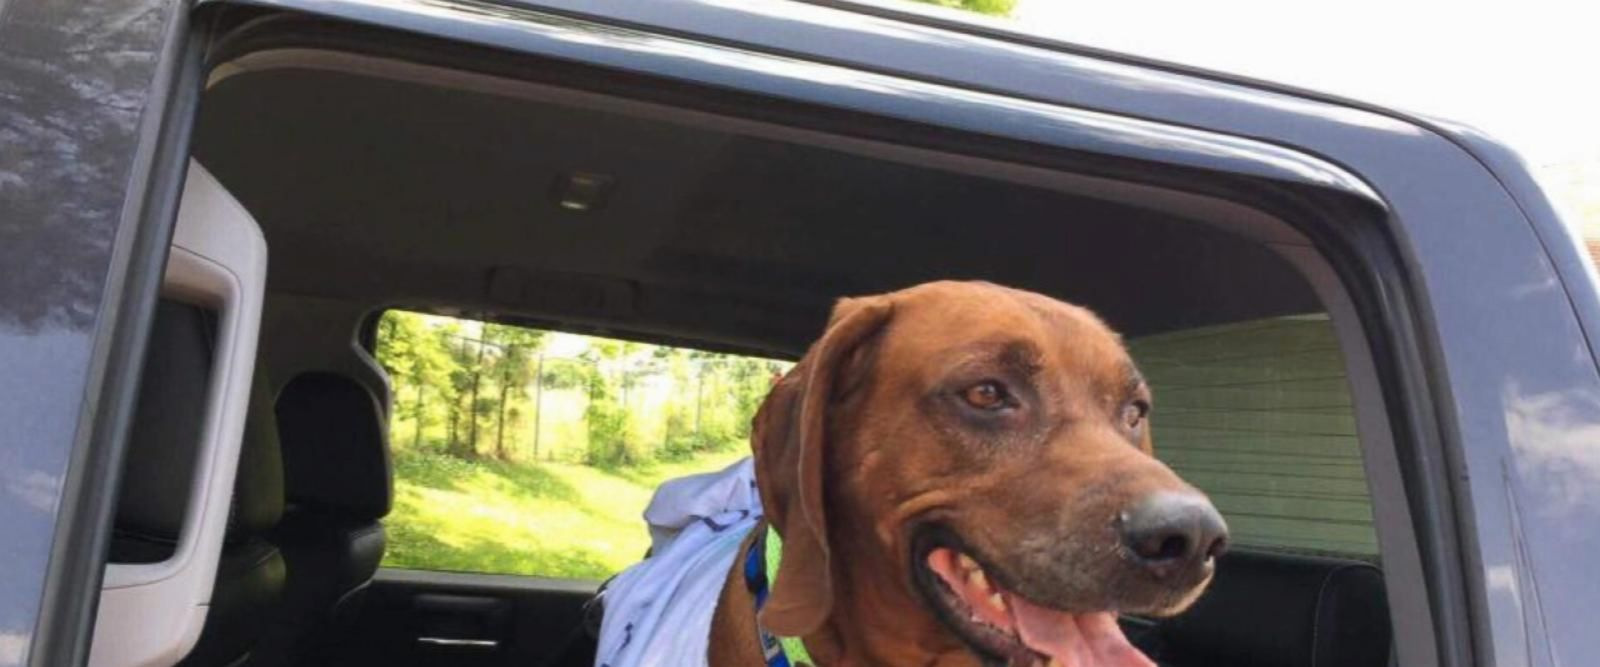 VIDEO: Volunteers drive lost dog thousands of miles to return to owner